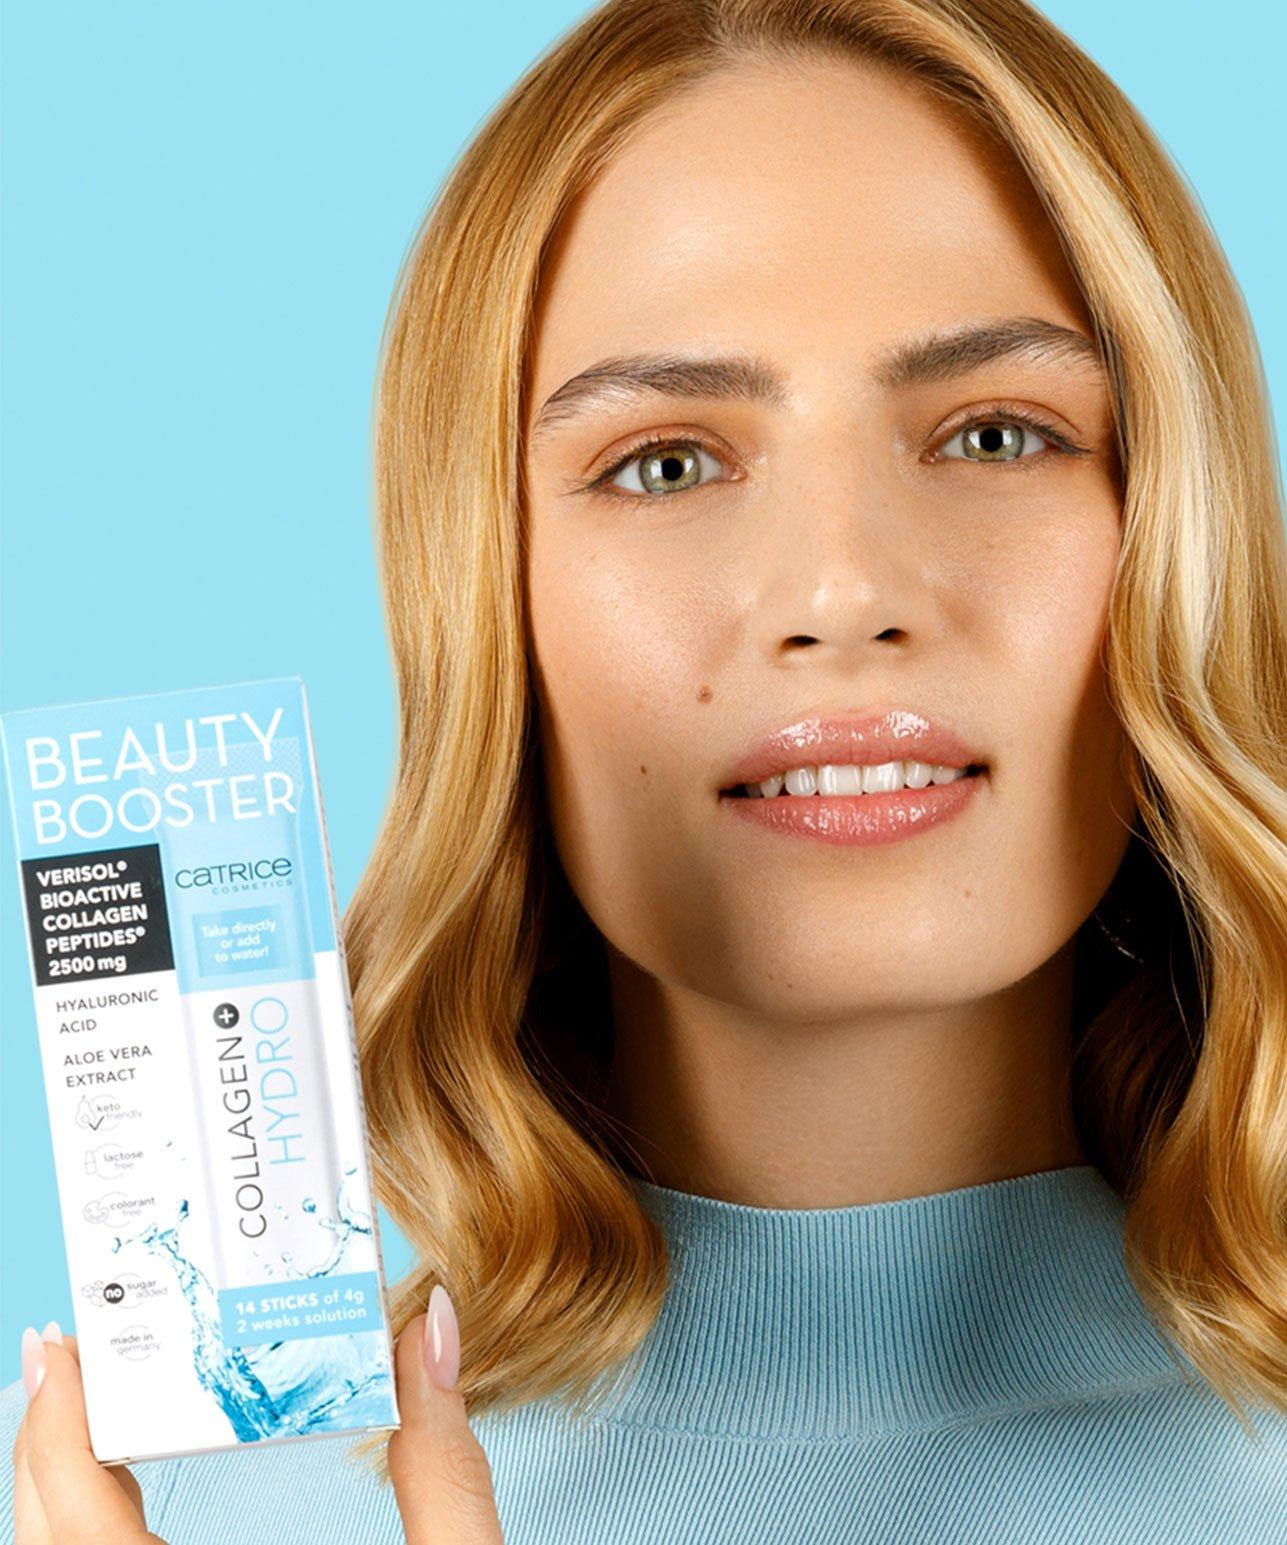 Catrice Collagen+ Hydro Beauty Booster